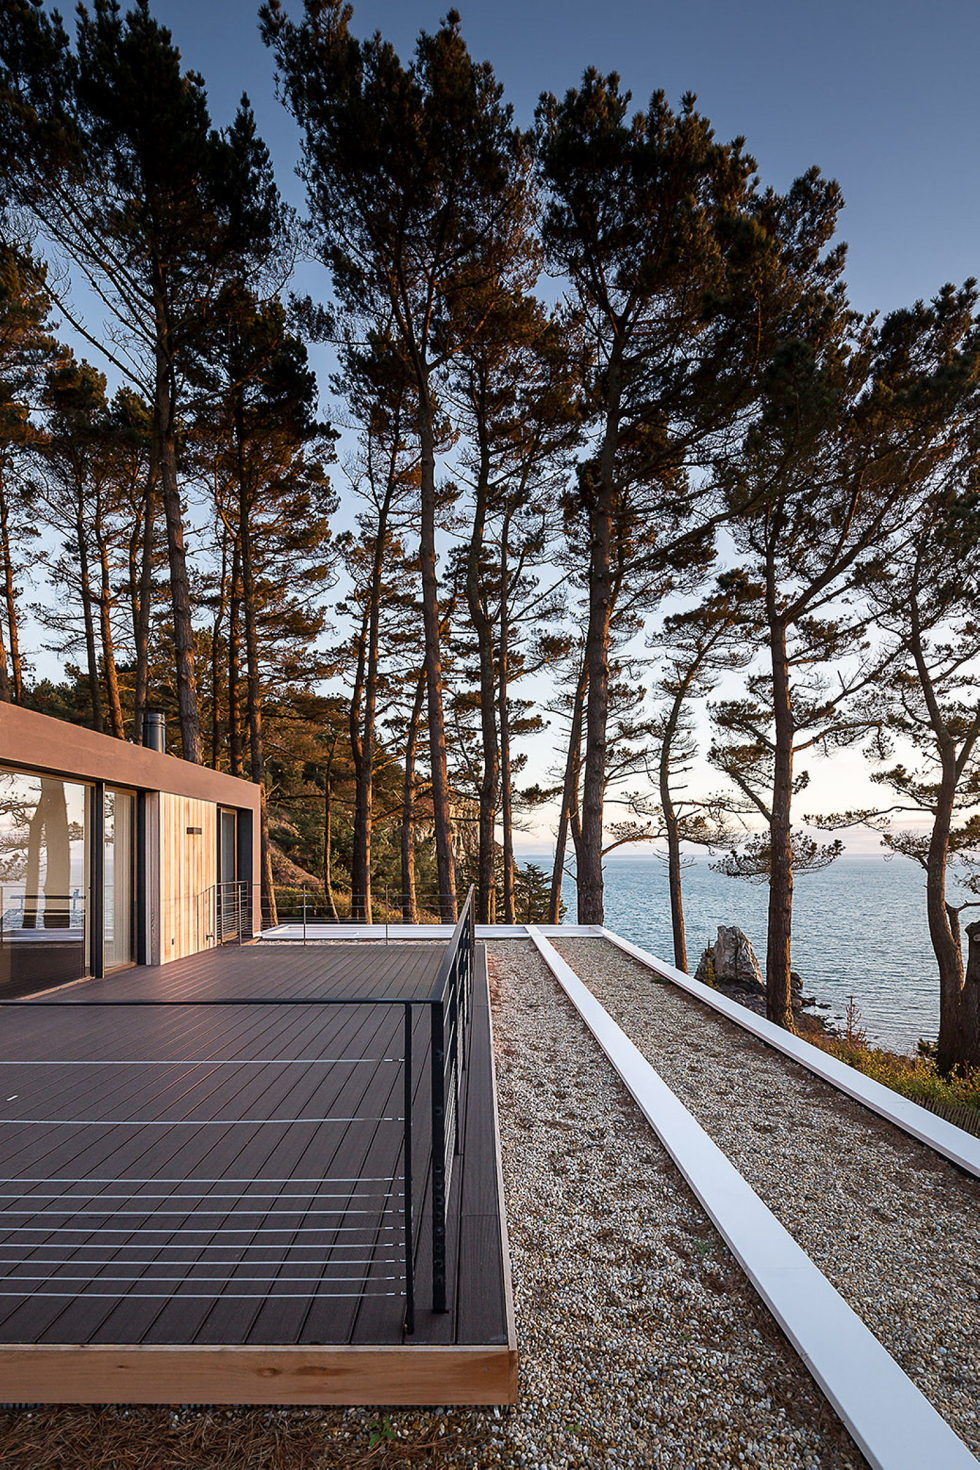 Outstanding Bay View From Residency At Crozon Peninsula, France 14